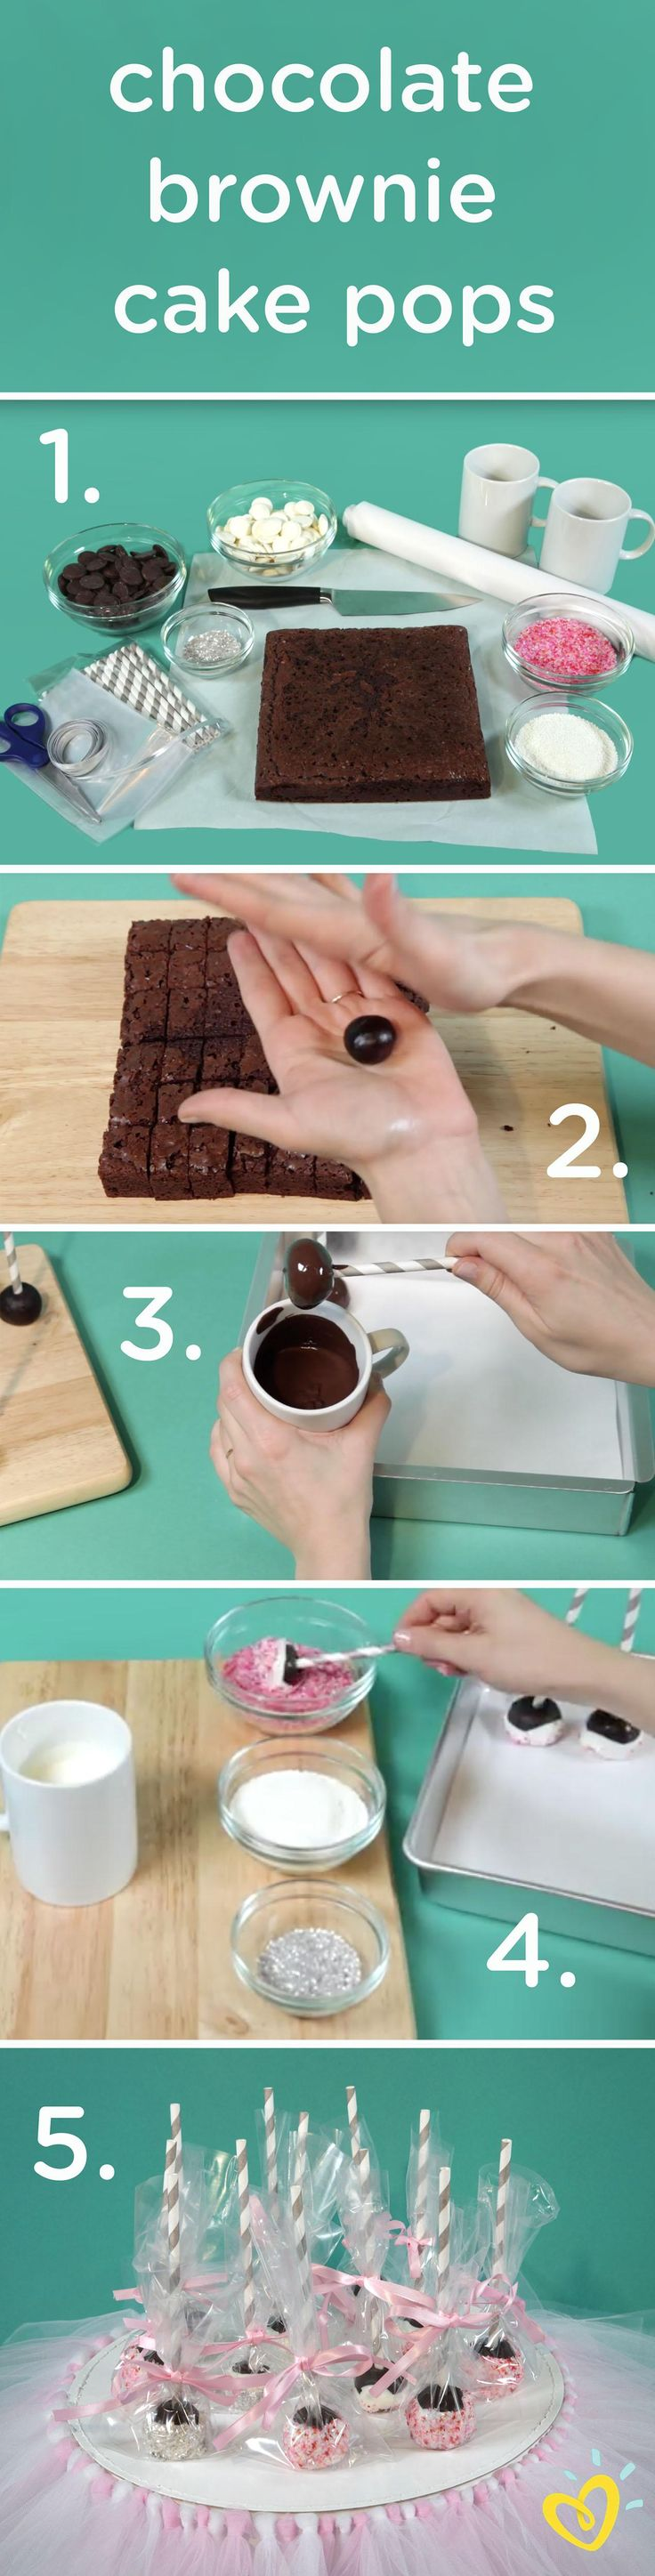 """Sweeten up your baby shower or toddler's birthday party with these adorable and delicious chocolate brownie cake pops or """"princess brownie wands."""" This step-by-step video will show you how to make this recipe and wrap it beautifully in cellophane and a bow!"""